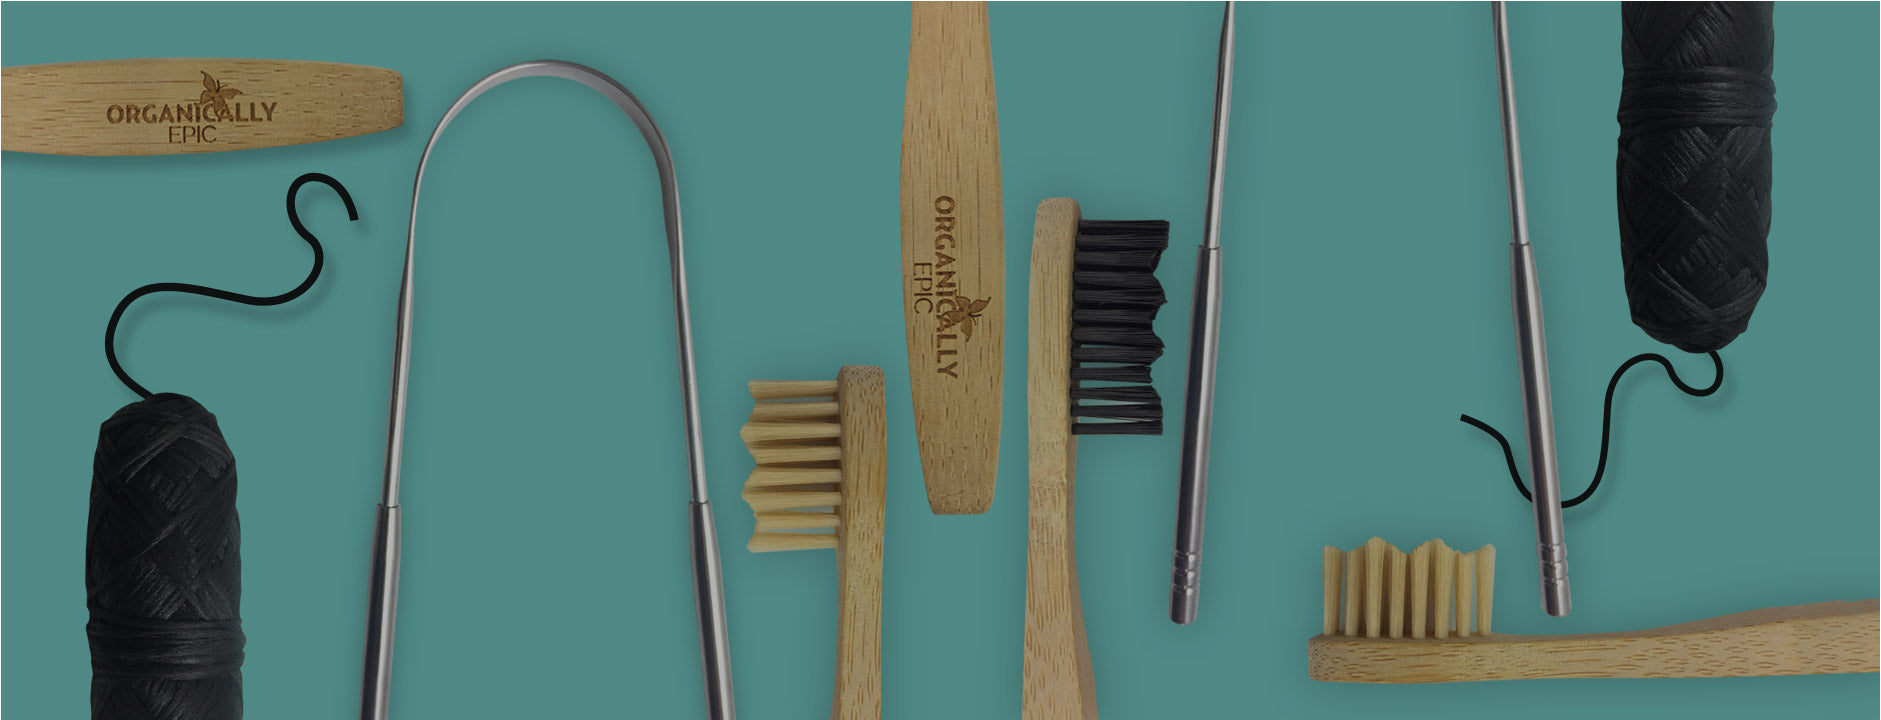 Reduced plastic dental care products